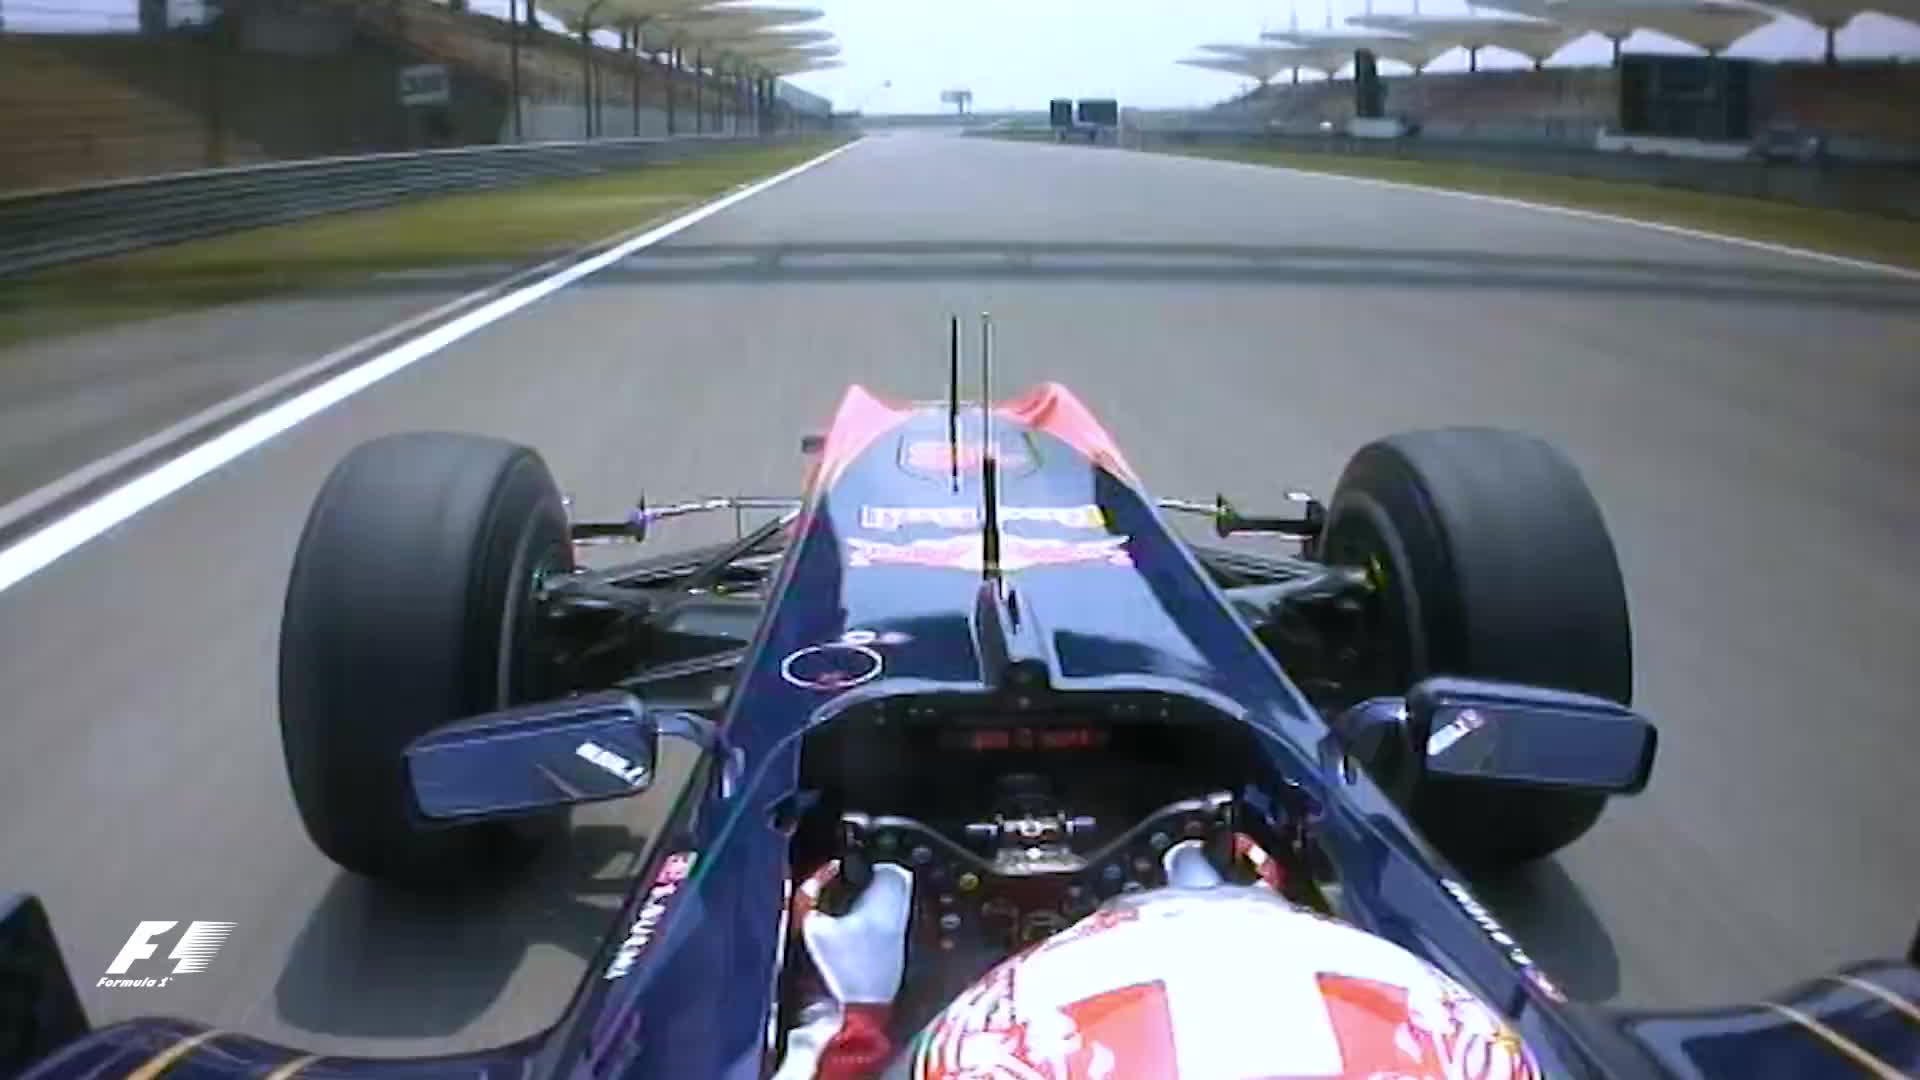 f1, formula 1, formula one, Sebastien Buemi's Wheels Come Off | 2010 Chinese Grand Prix GIFs